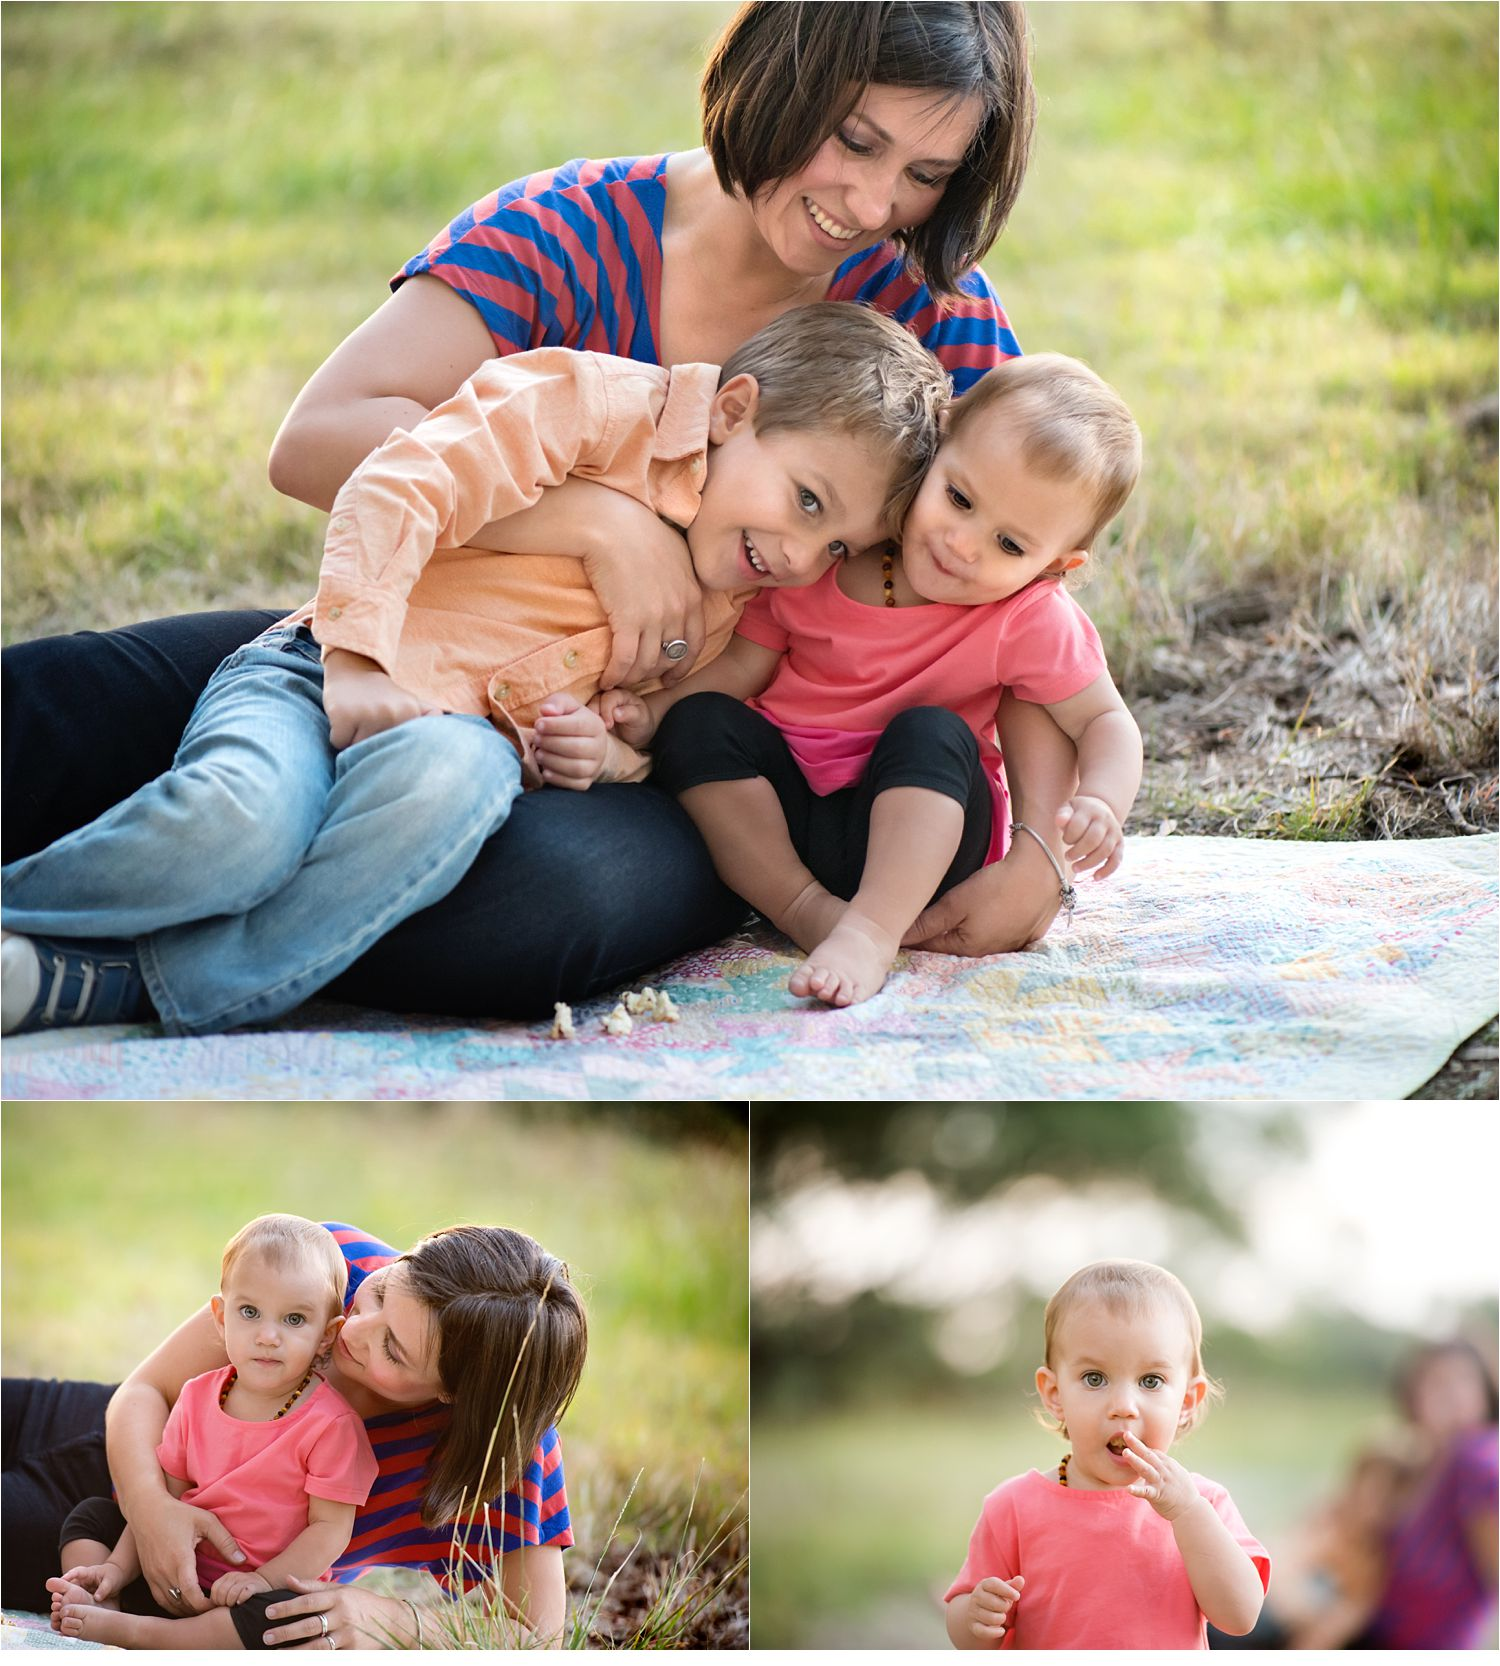 Bec-Stewart-Family-and-children-Lifestyle-Photographer-city-of-casey-melbourne-2.jpg